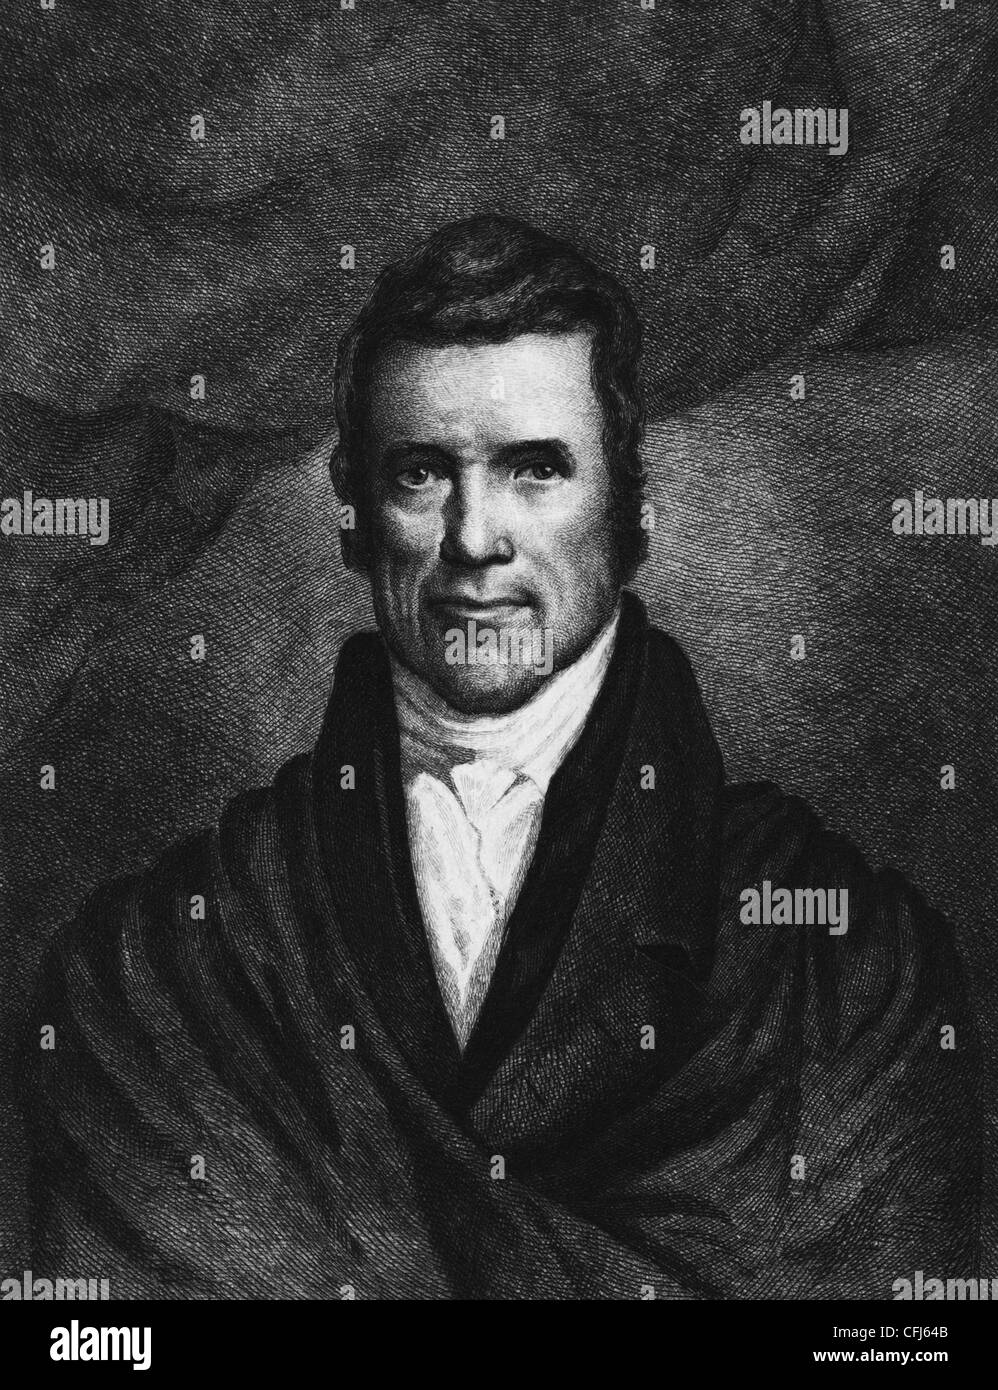 Vintage portrait print of American statesman and judge John Marshall (1755 - 1835) - the fourth US Chief Justice - Stock Image